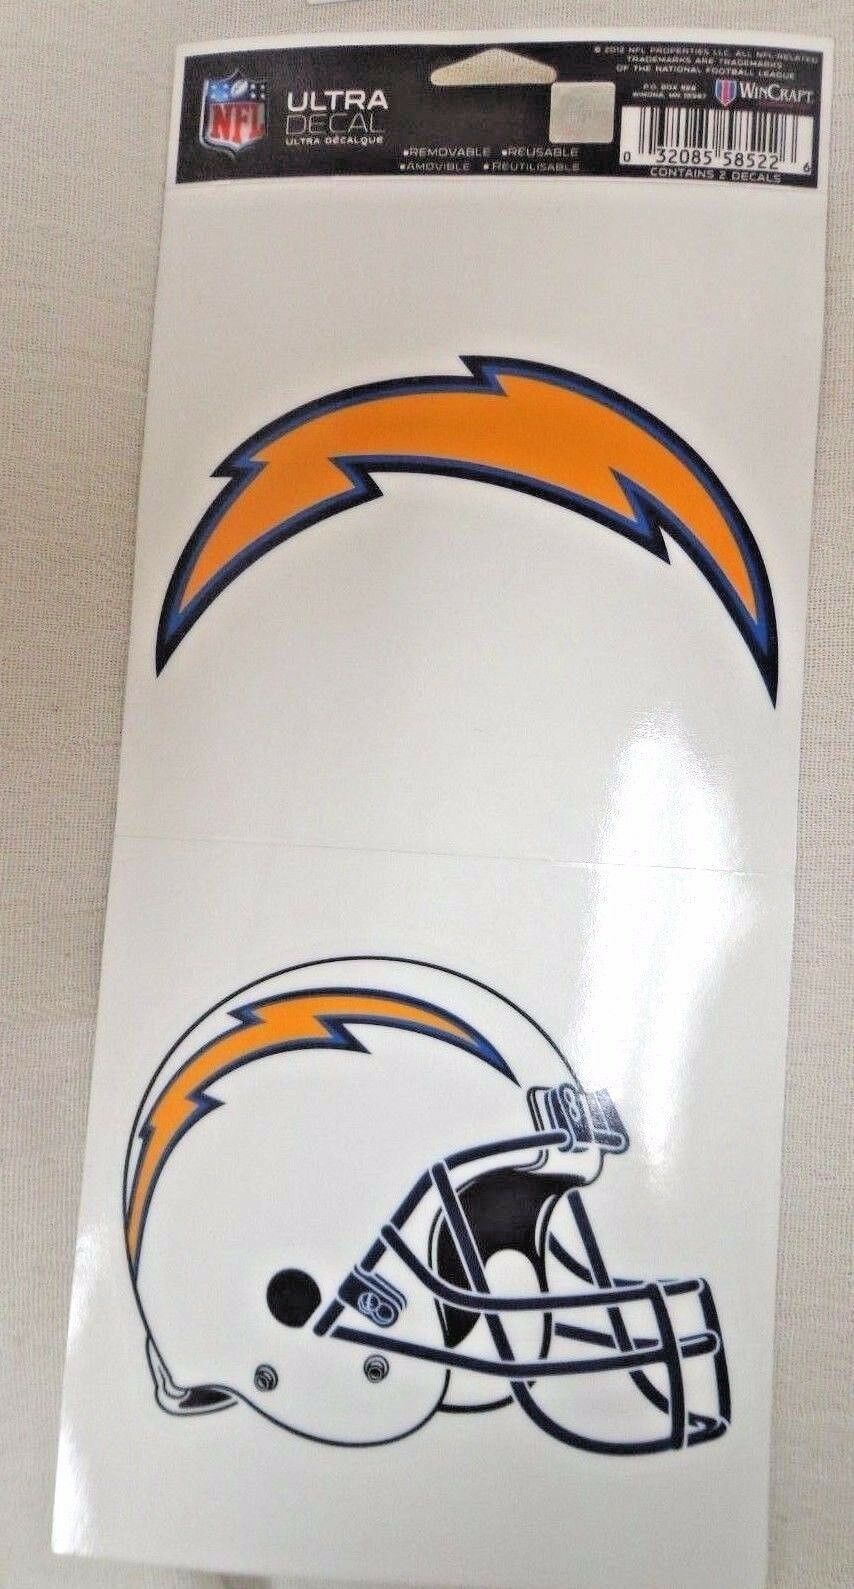 NFL Ultra Decals 2 Pack Set Removable Reusable Sticker Wincraft San Diego Chargers